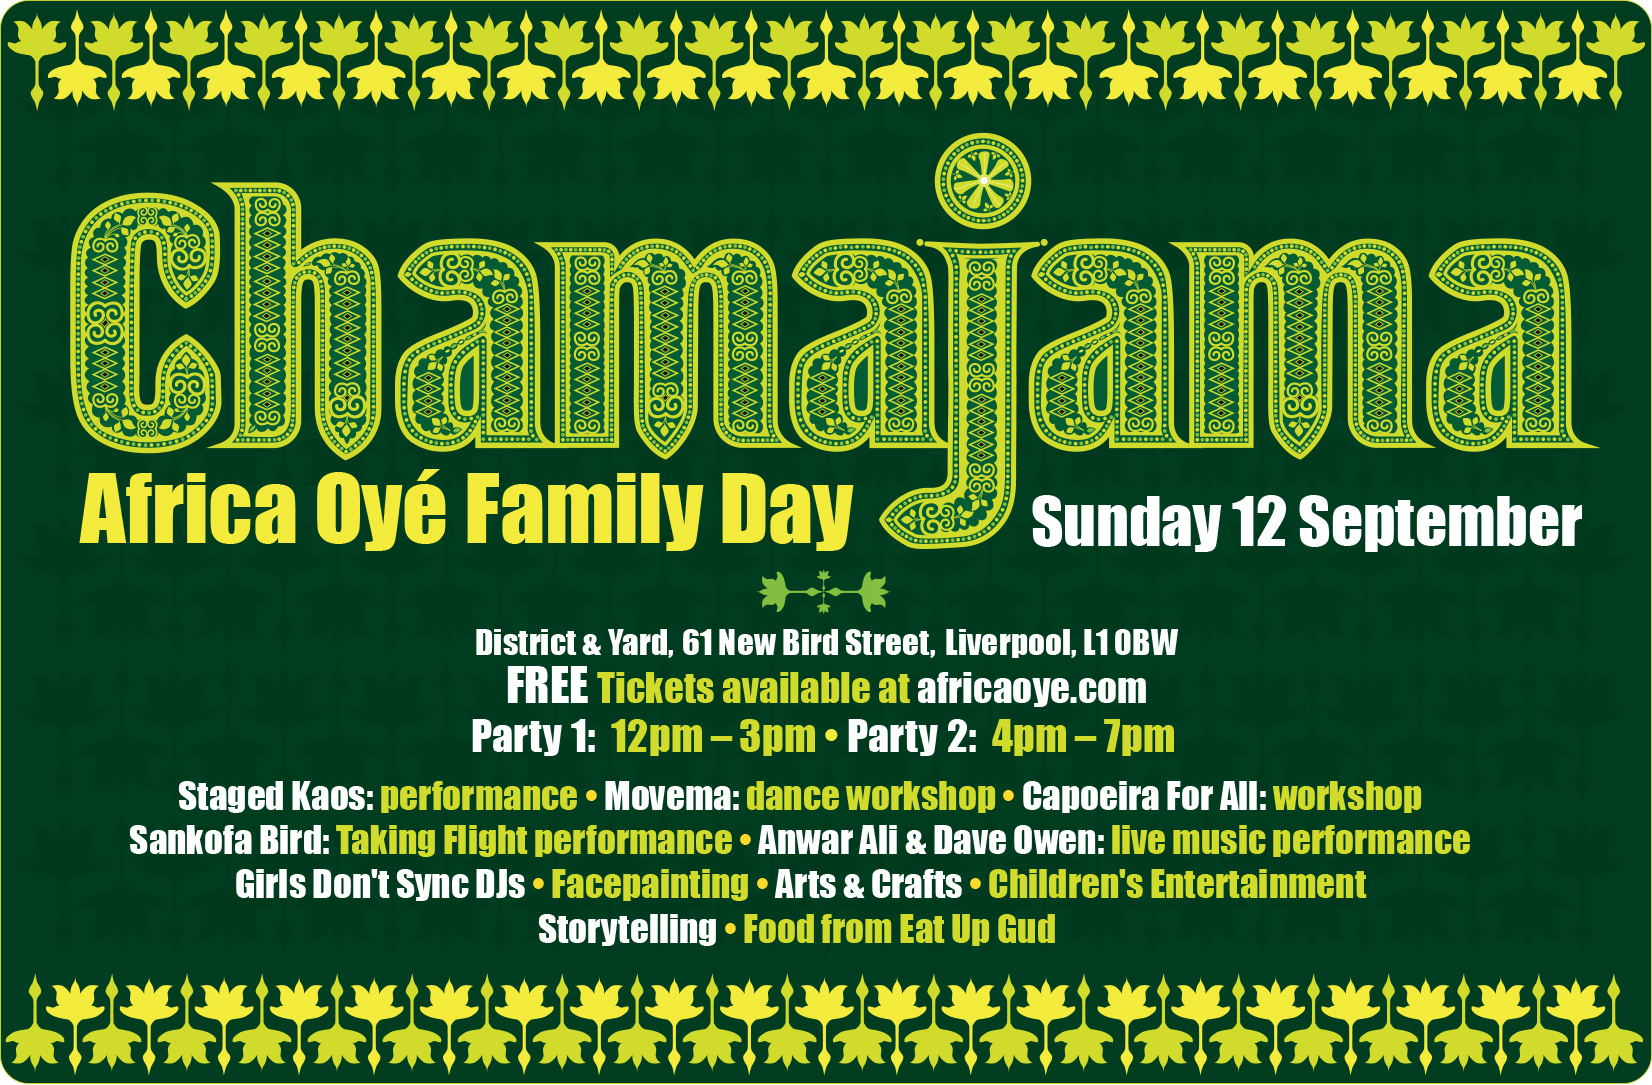 ChamaJama. Africa Oyé Family Day. Sunday 12th September at District & Yard. FREE entry. Tickets required.